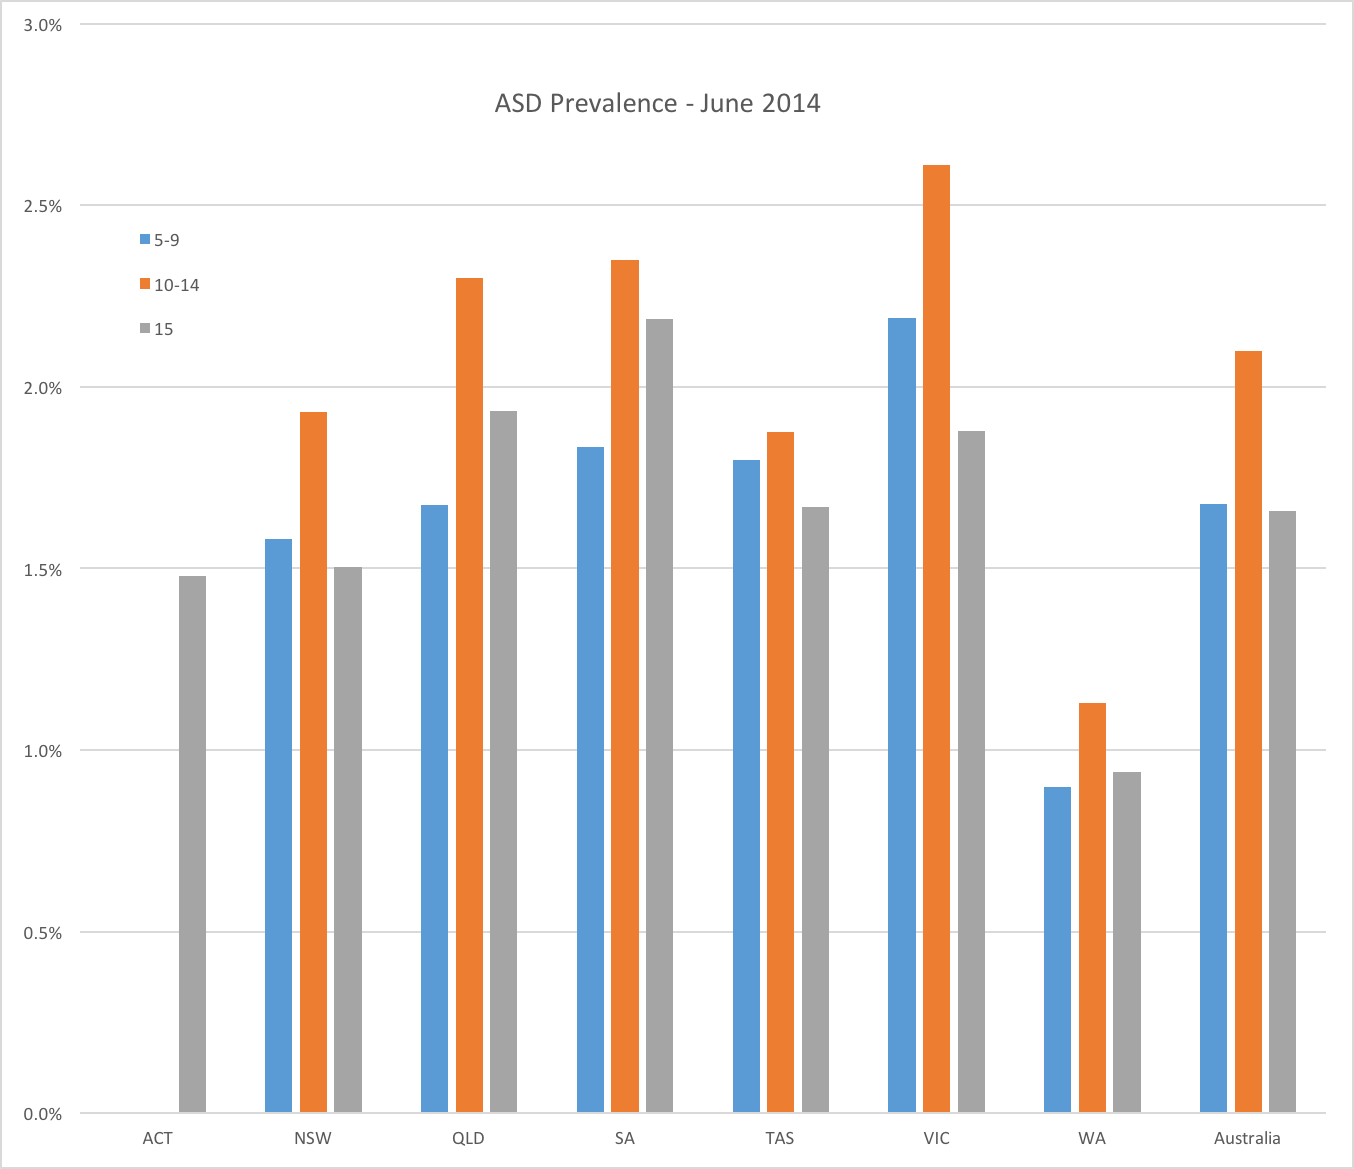 Prevalence For Autism Variability Of Autism Asd Prevalence Between Australian